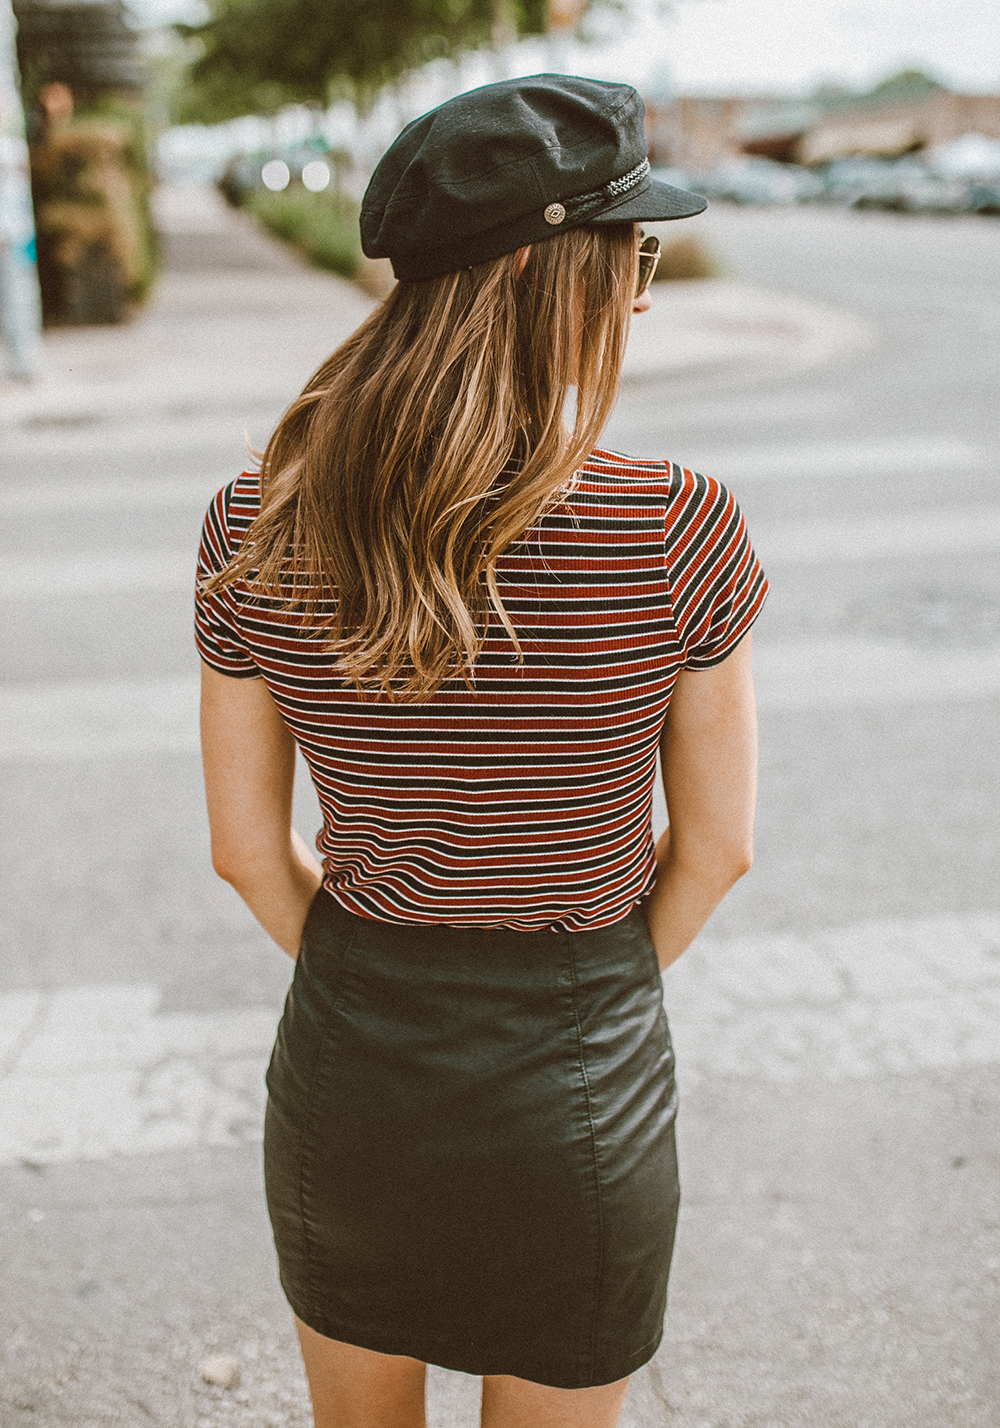 livvyland-blog-olivia-watson-austin-texas-fashion-style-blogger-brixton-fishermans-baker-boy-hat-urban-outfitters-outfit-idea-5